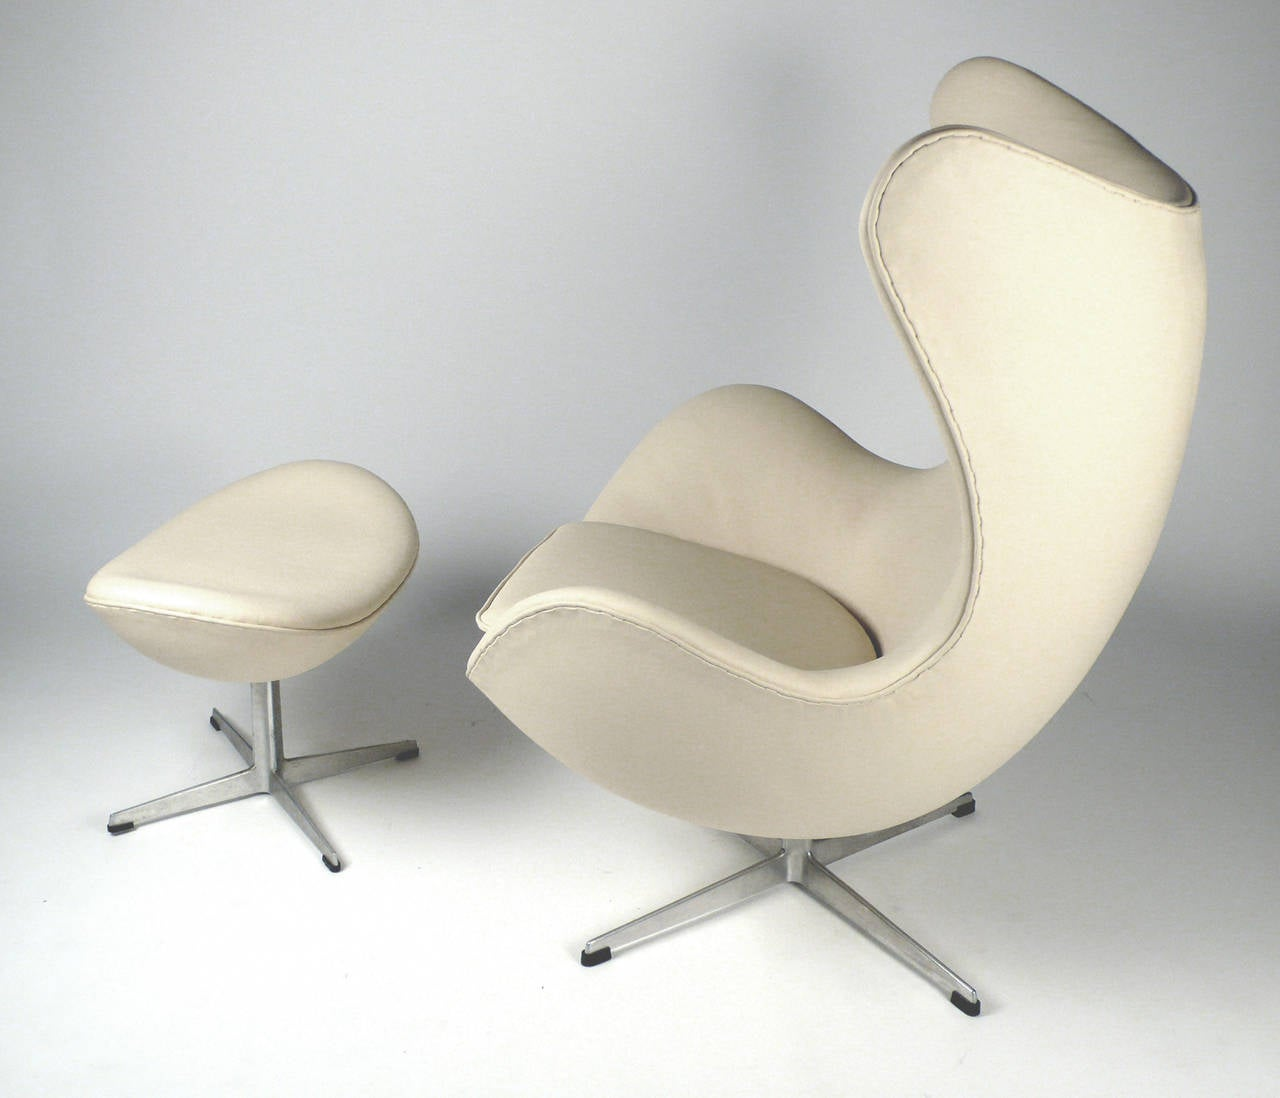 early production leather egg chair with ottoman by arne jacobsen at 1stdibs. Black Bedroom Furniture Sets. Home Design Ideas